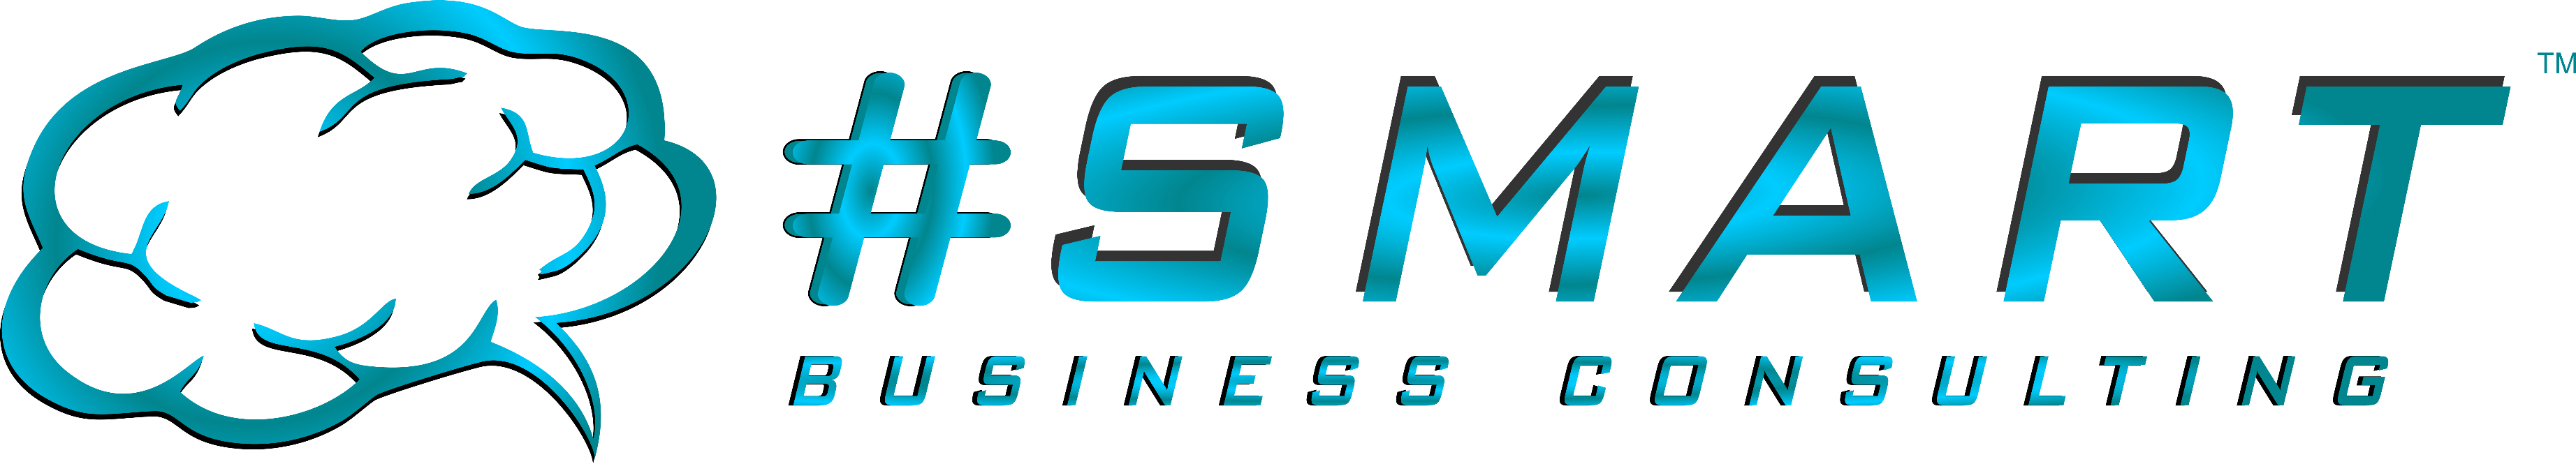 hashtag Smart Business Consulting is a Dope company